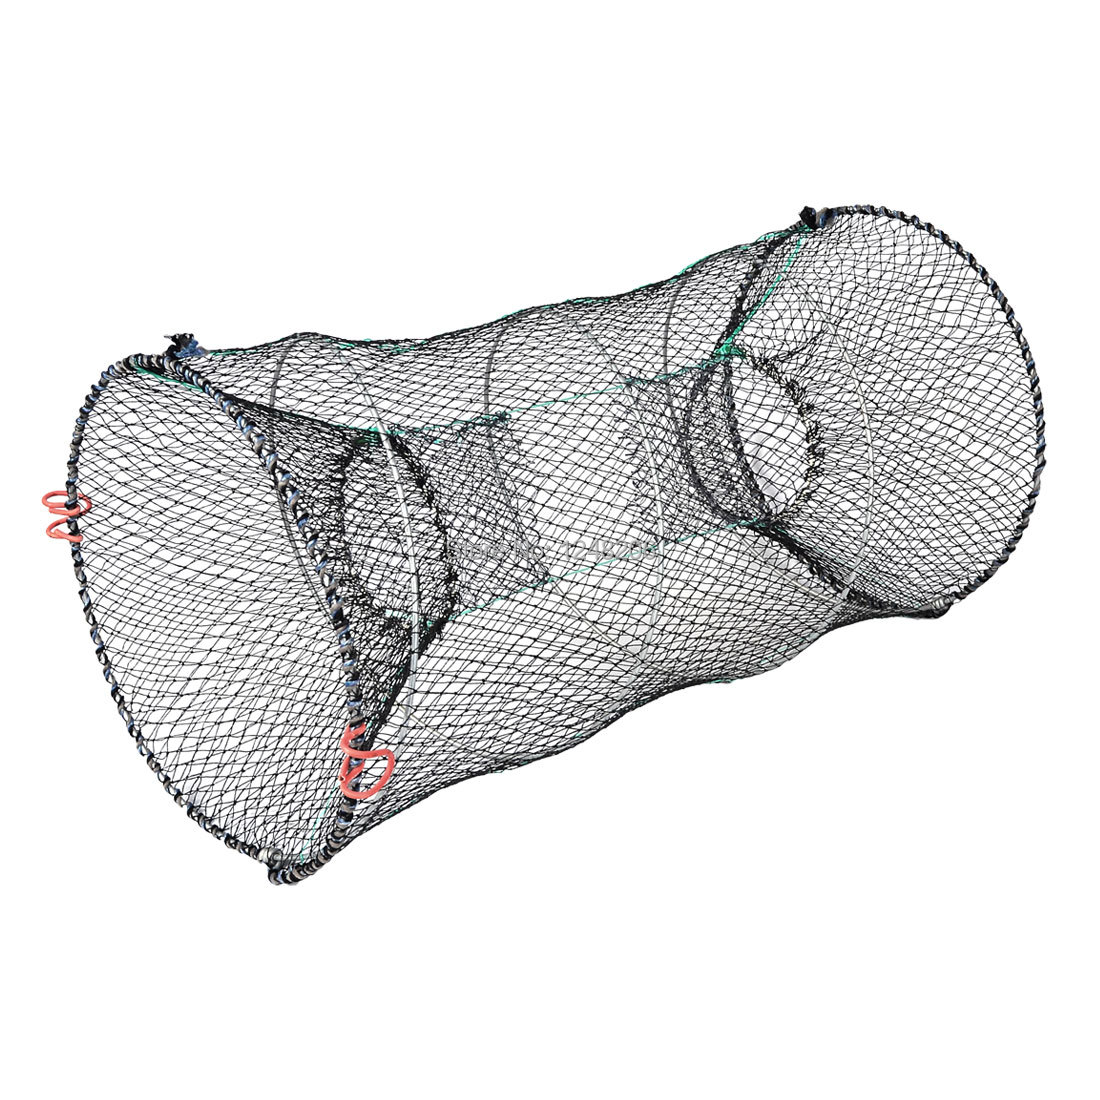 "Crab Crawfish Shrimp Foldable Black Green Fishing Keep Net Trap 23.6""(China (Mainland))"